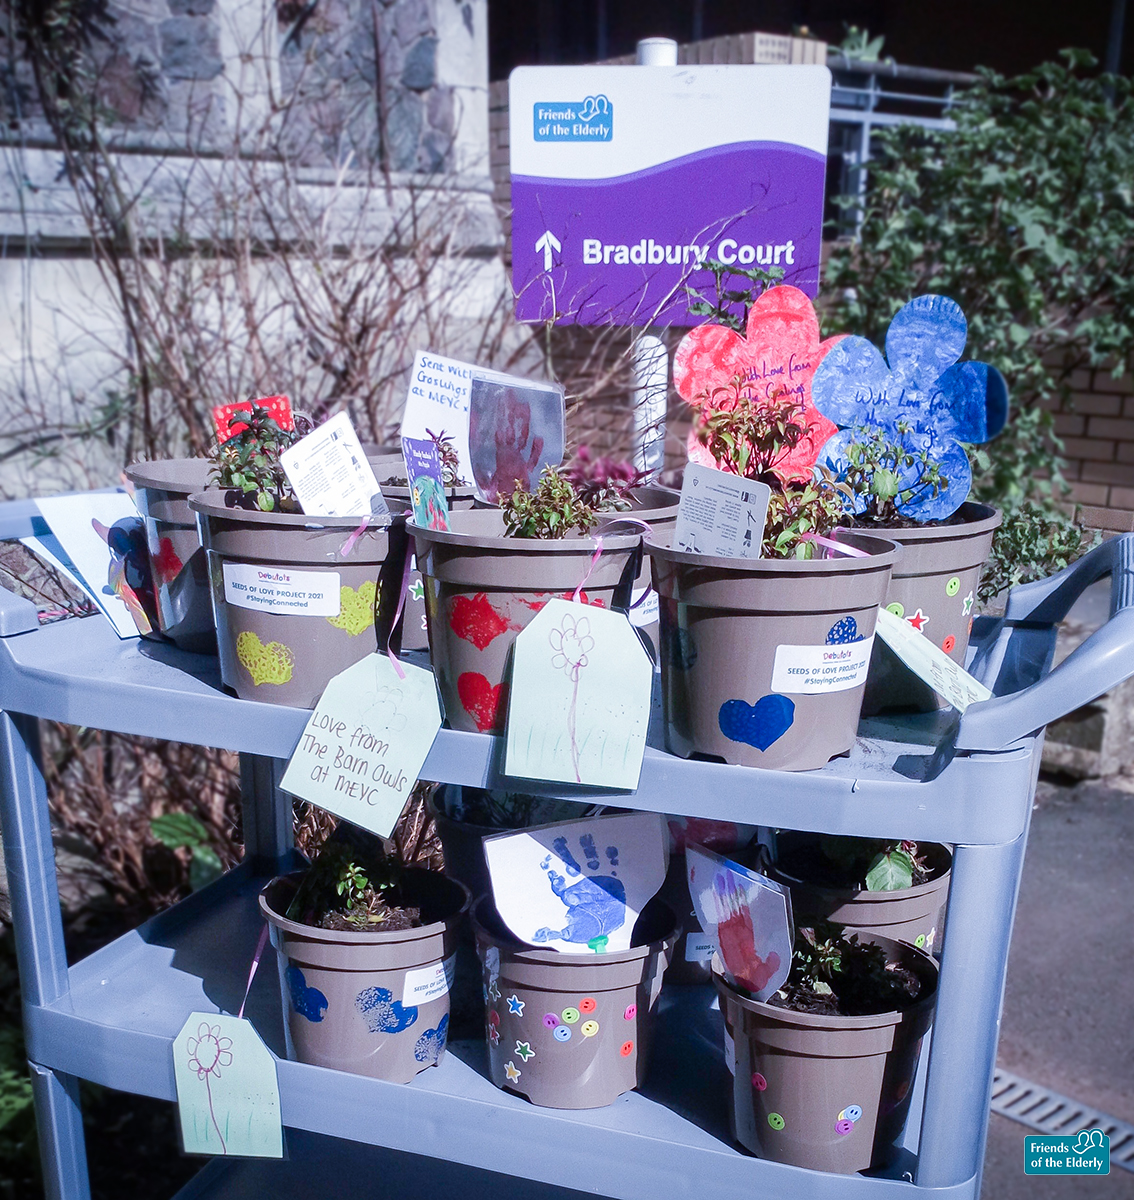 The plants donated to our Malvern care home